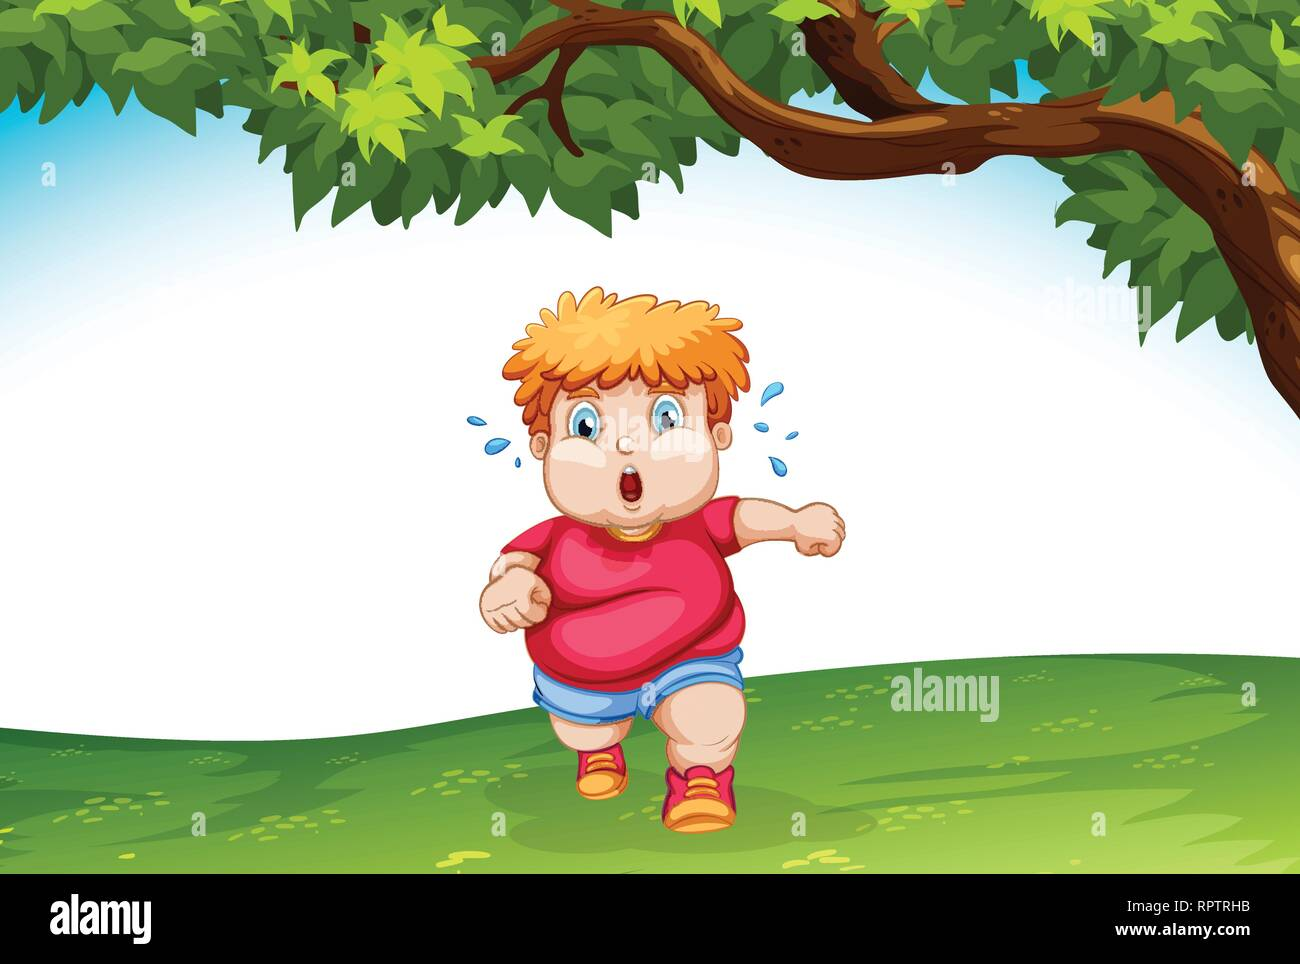 Obese child running outside illustration - Stock Vector